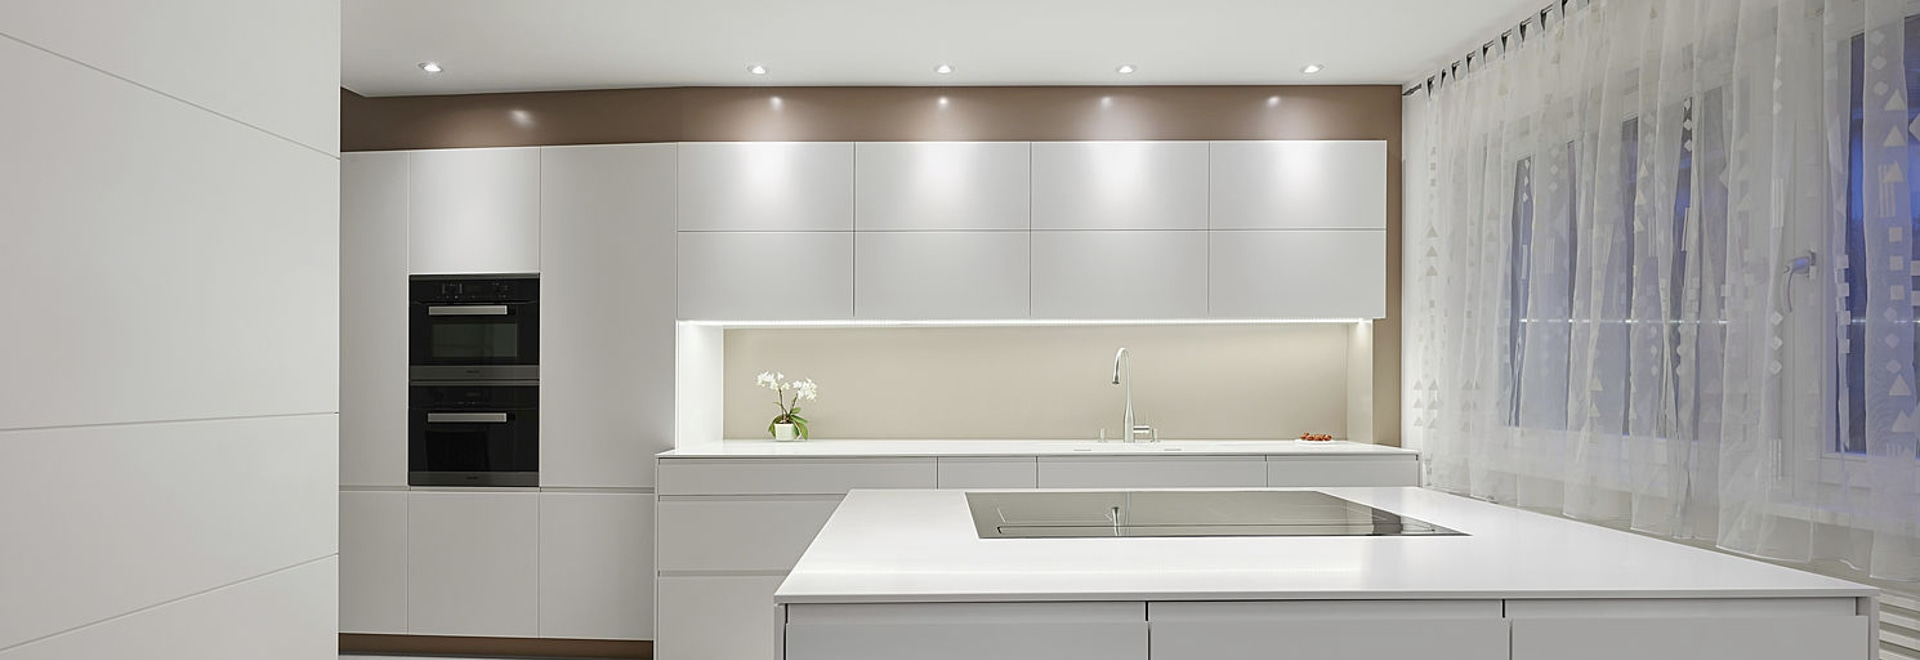 Planit Kitchen Design The Latest Corianr Kitchen From Planit Planit